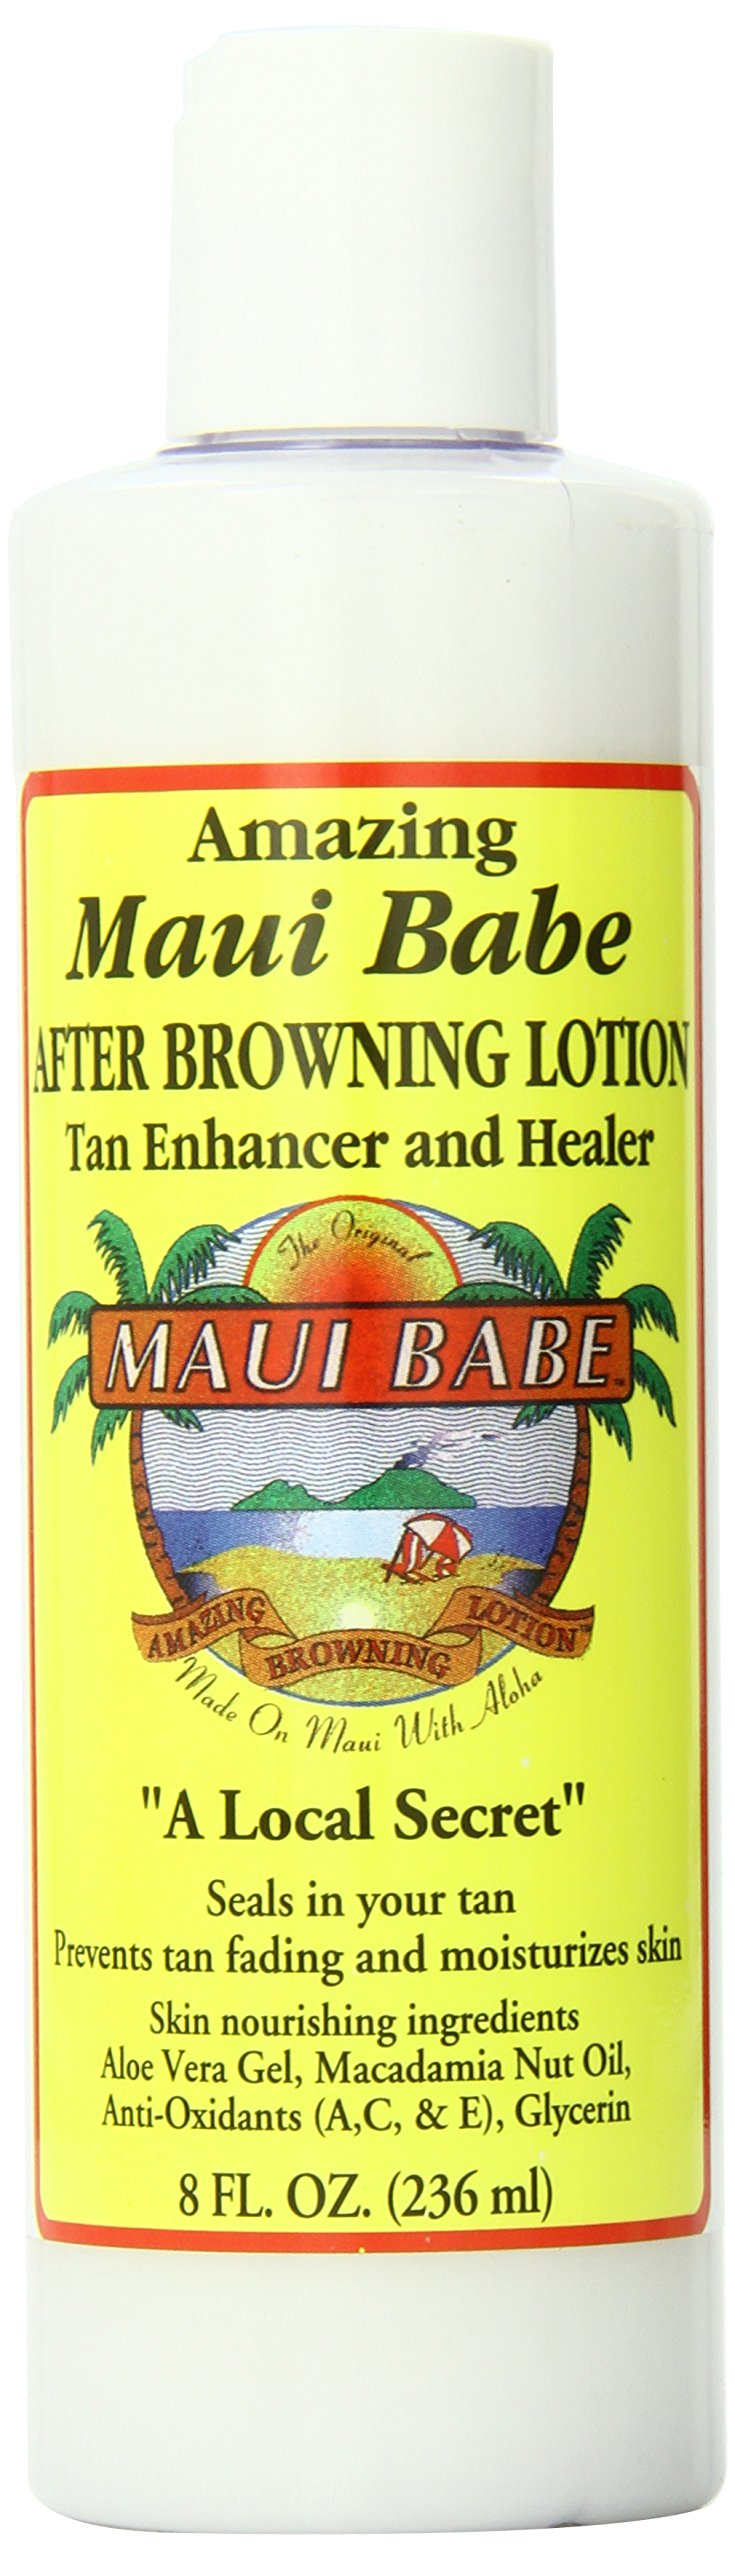 Maui Babe After Browning Tanning Lotion 8 Ounces by Maui Babe